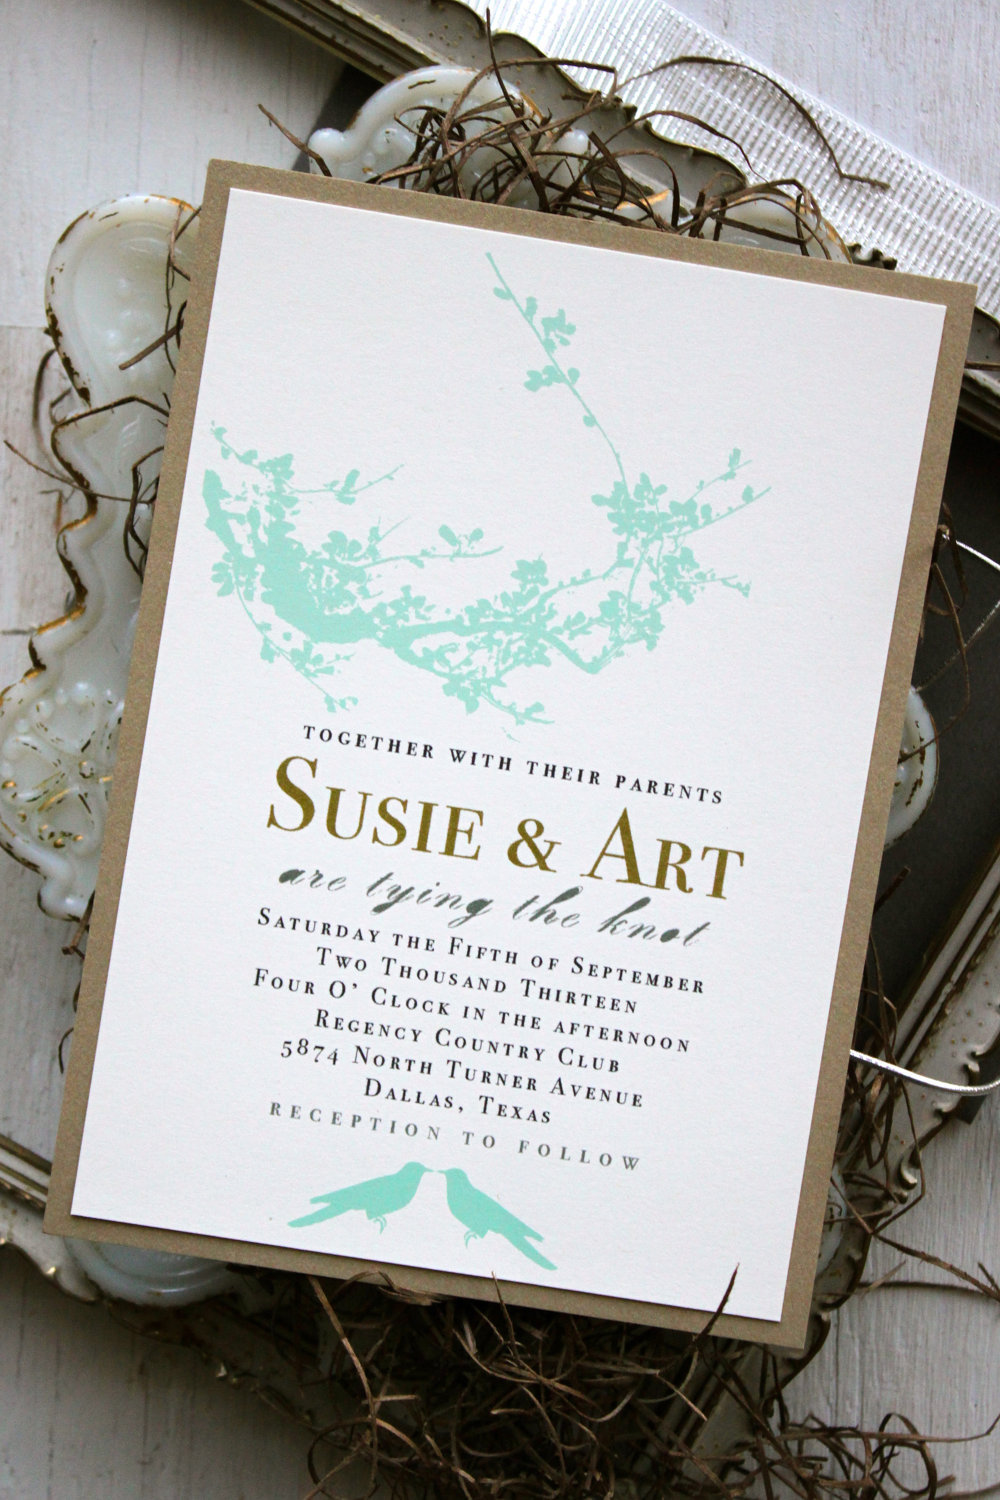 Rustic-romance-wedding-invitation-mint-gold-black-and-white.full